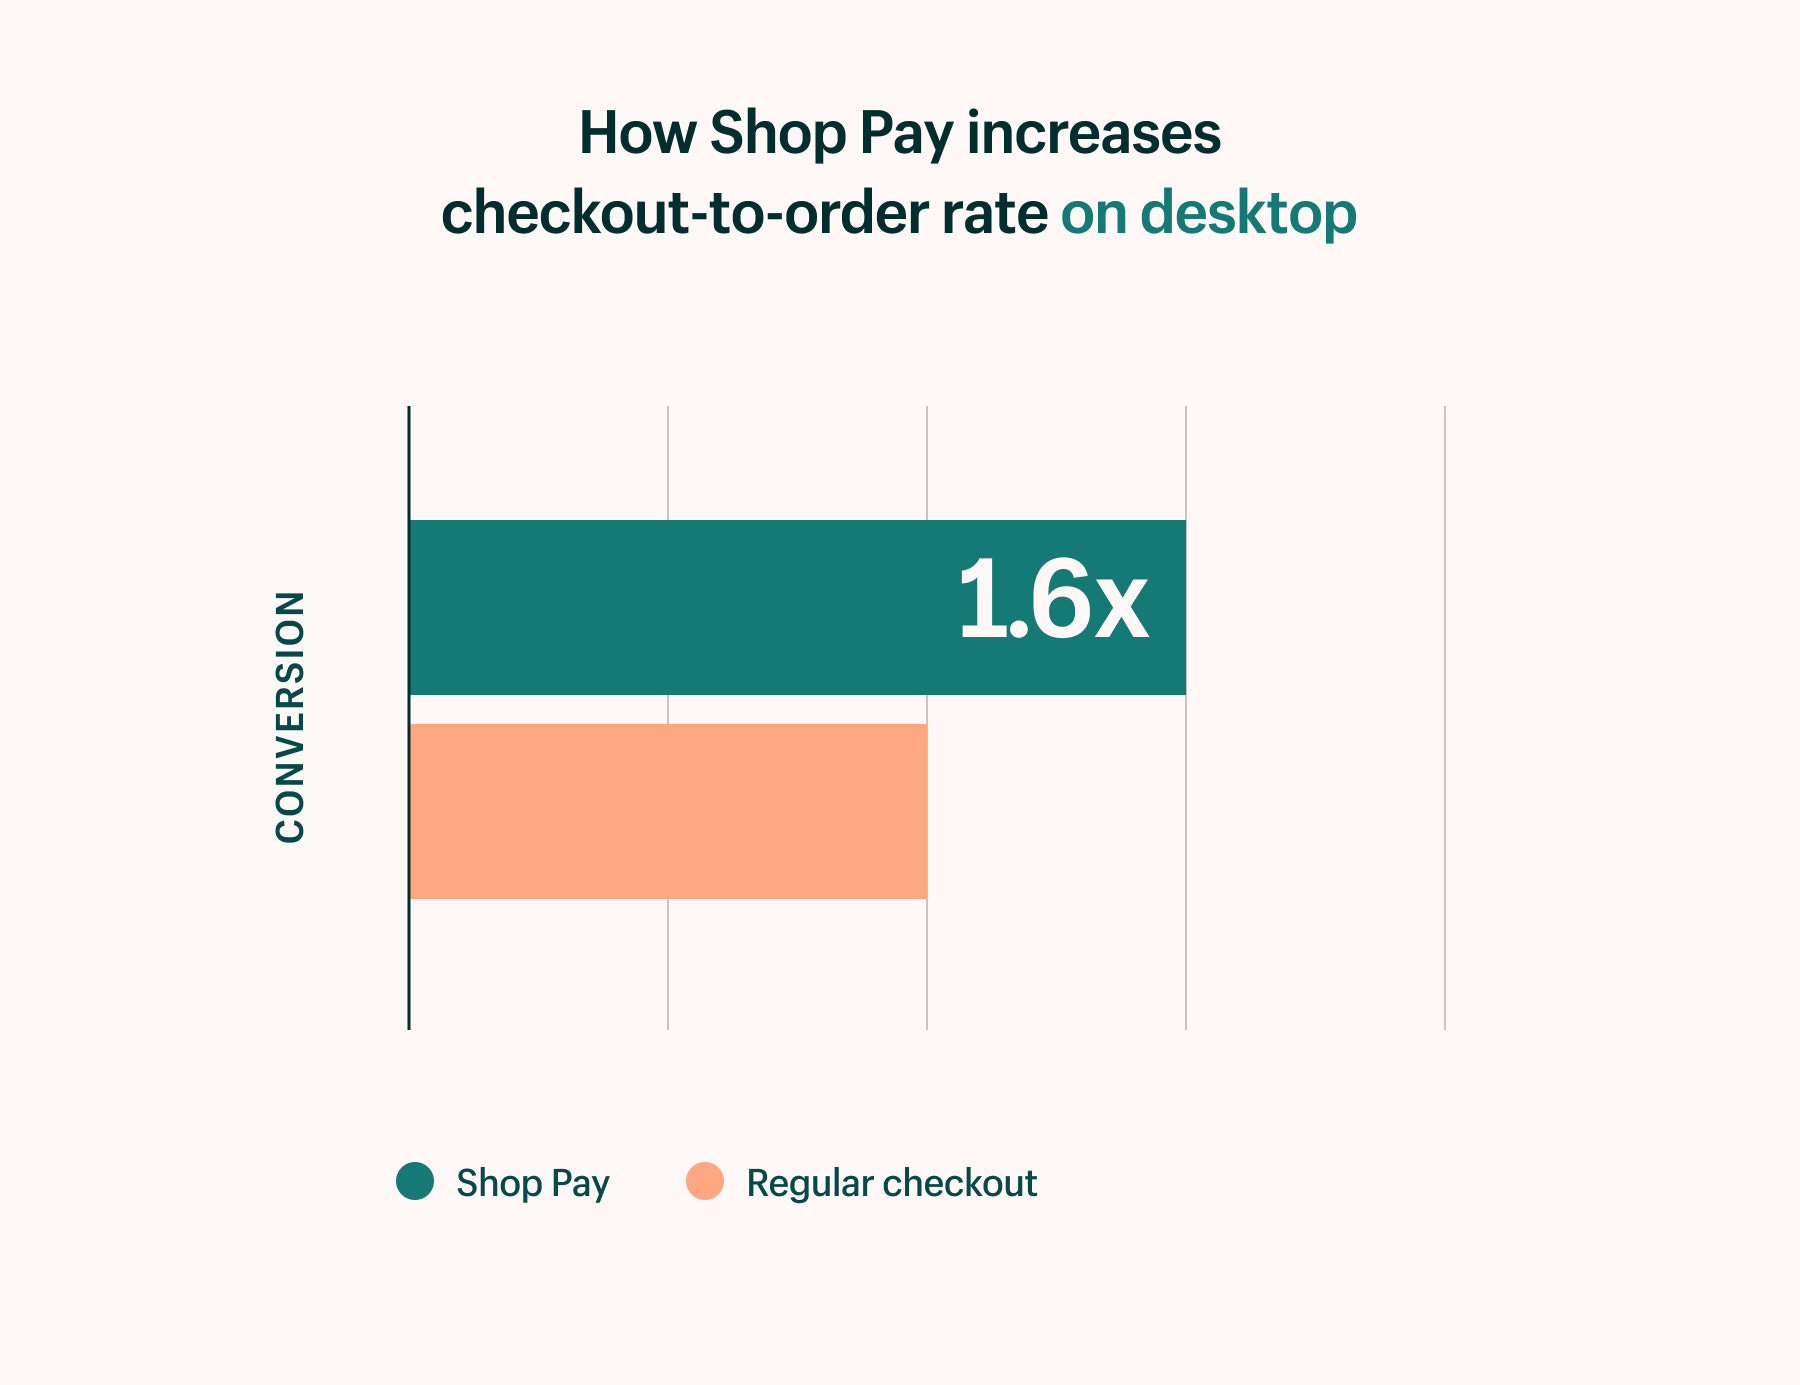 Shop Pay increases checkout-to-order on desktop by 1.6x